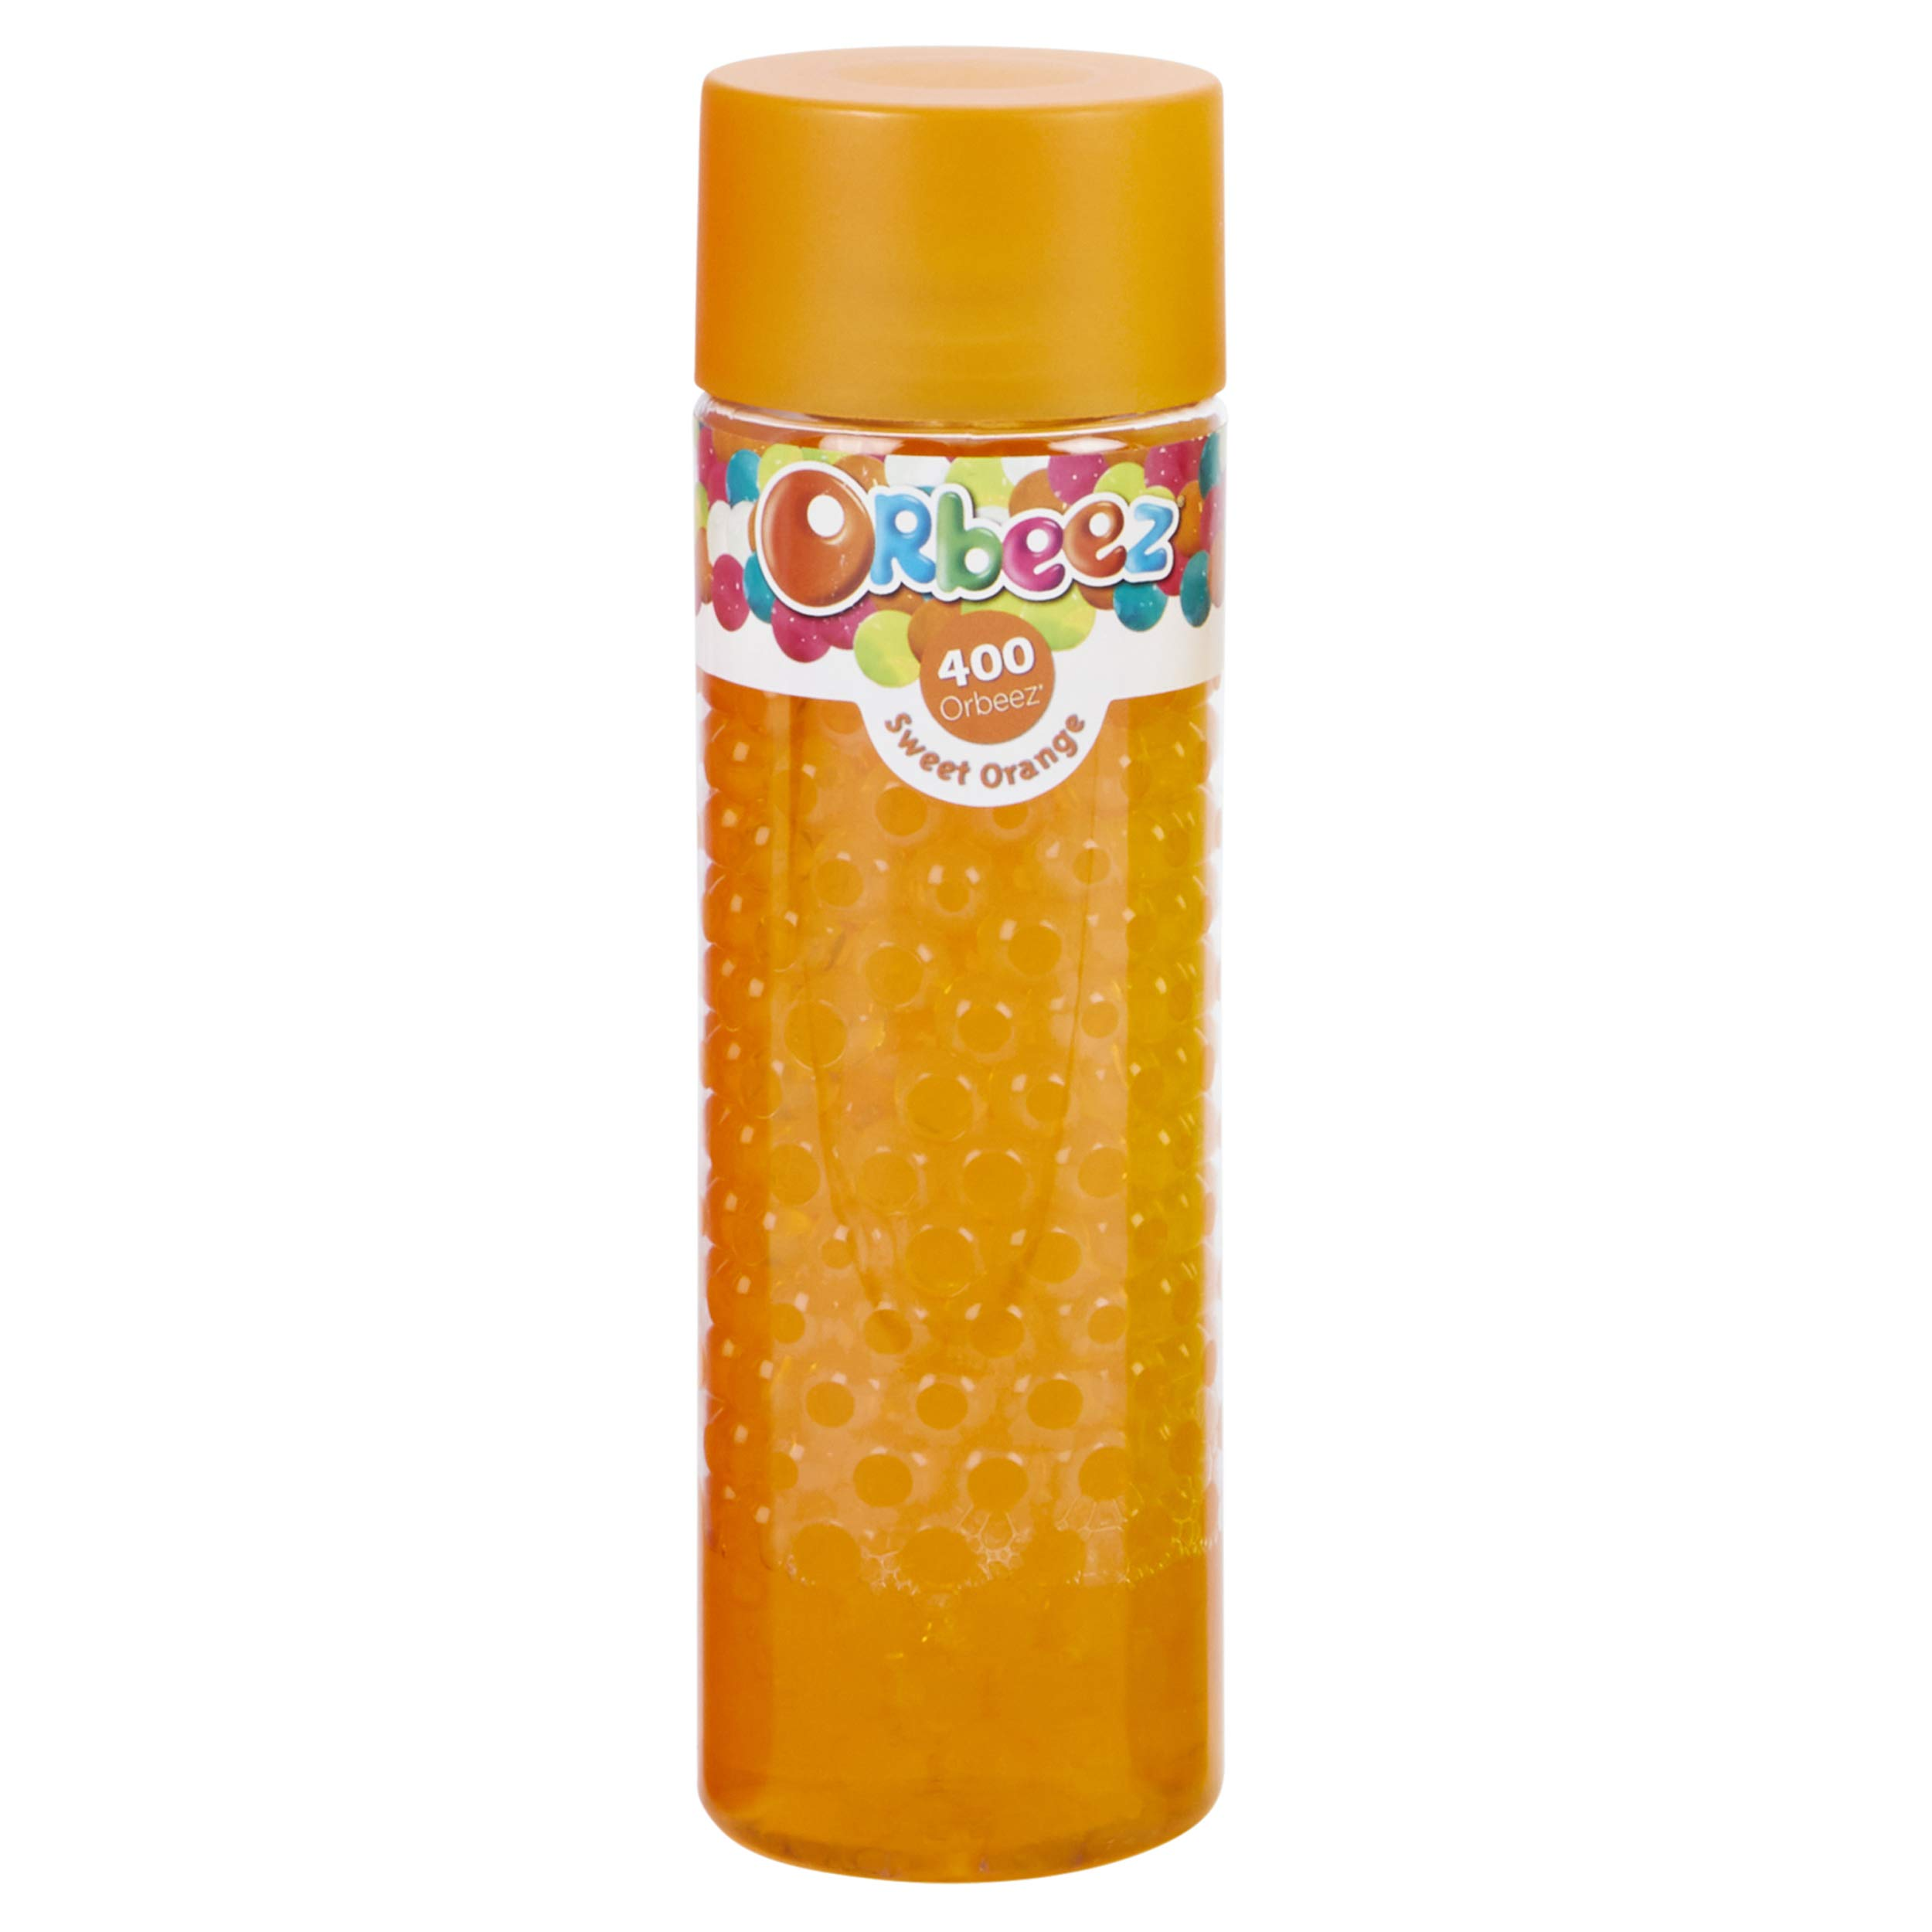 Orbeez Grown Orange Refill for Use with Crush Playset